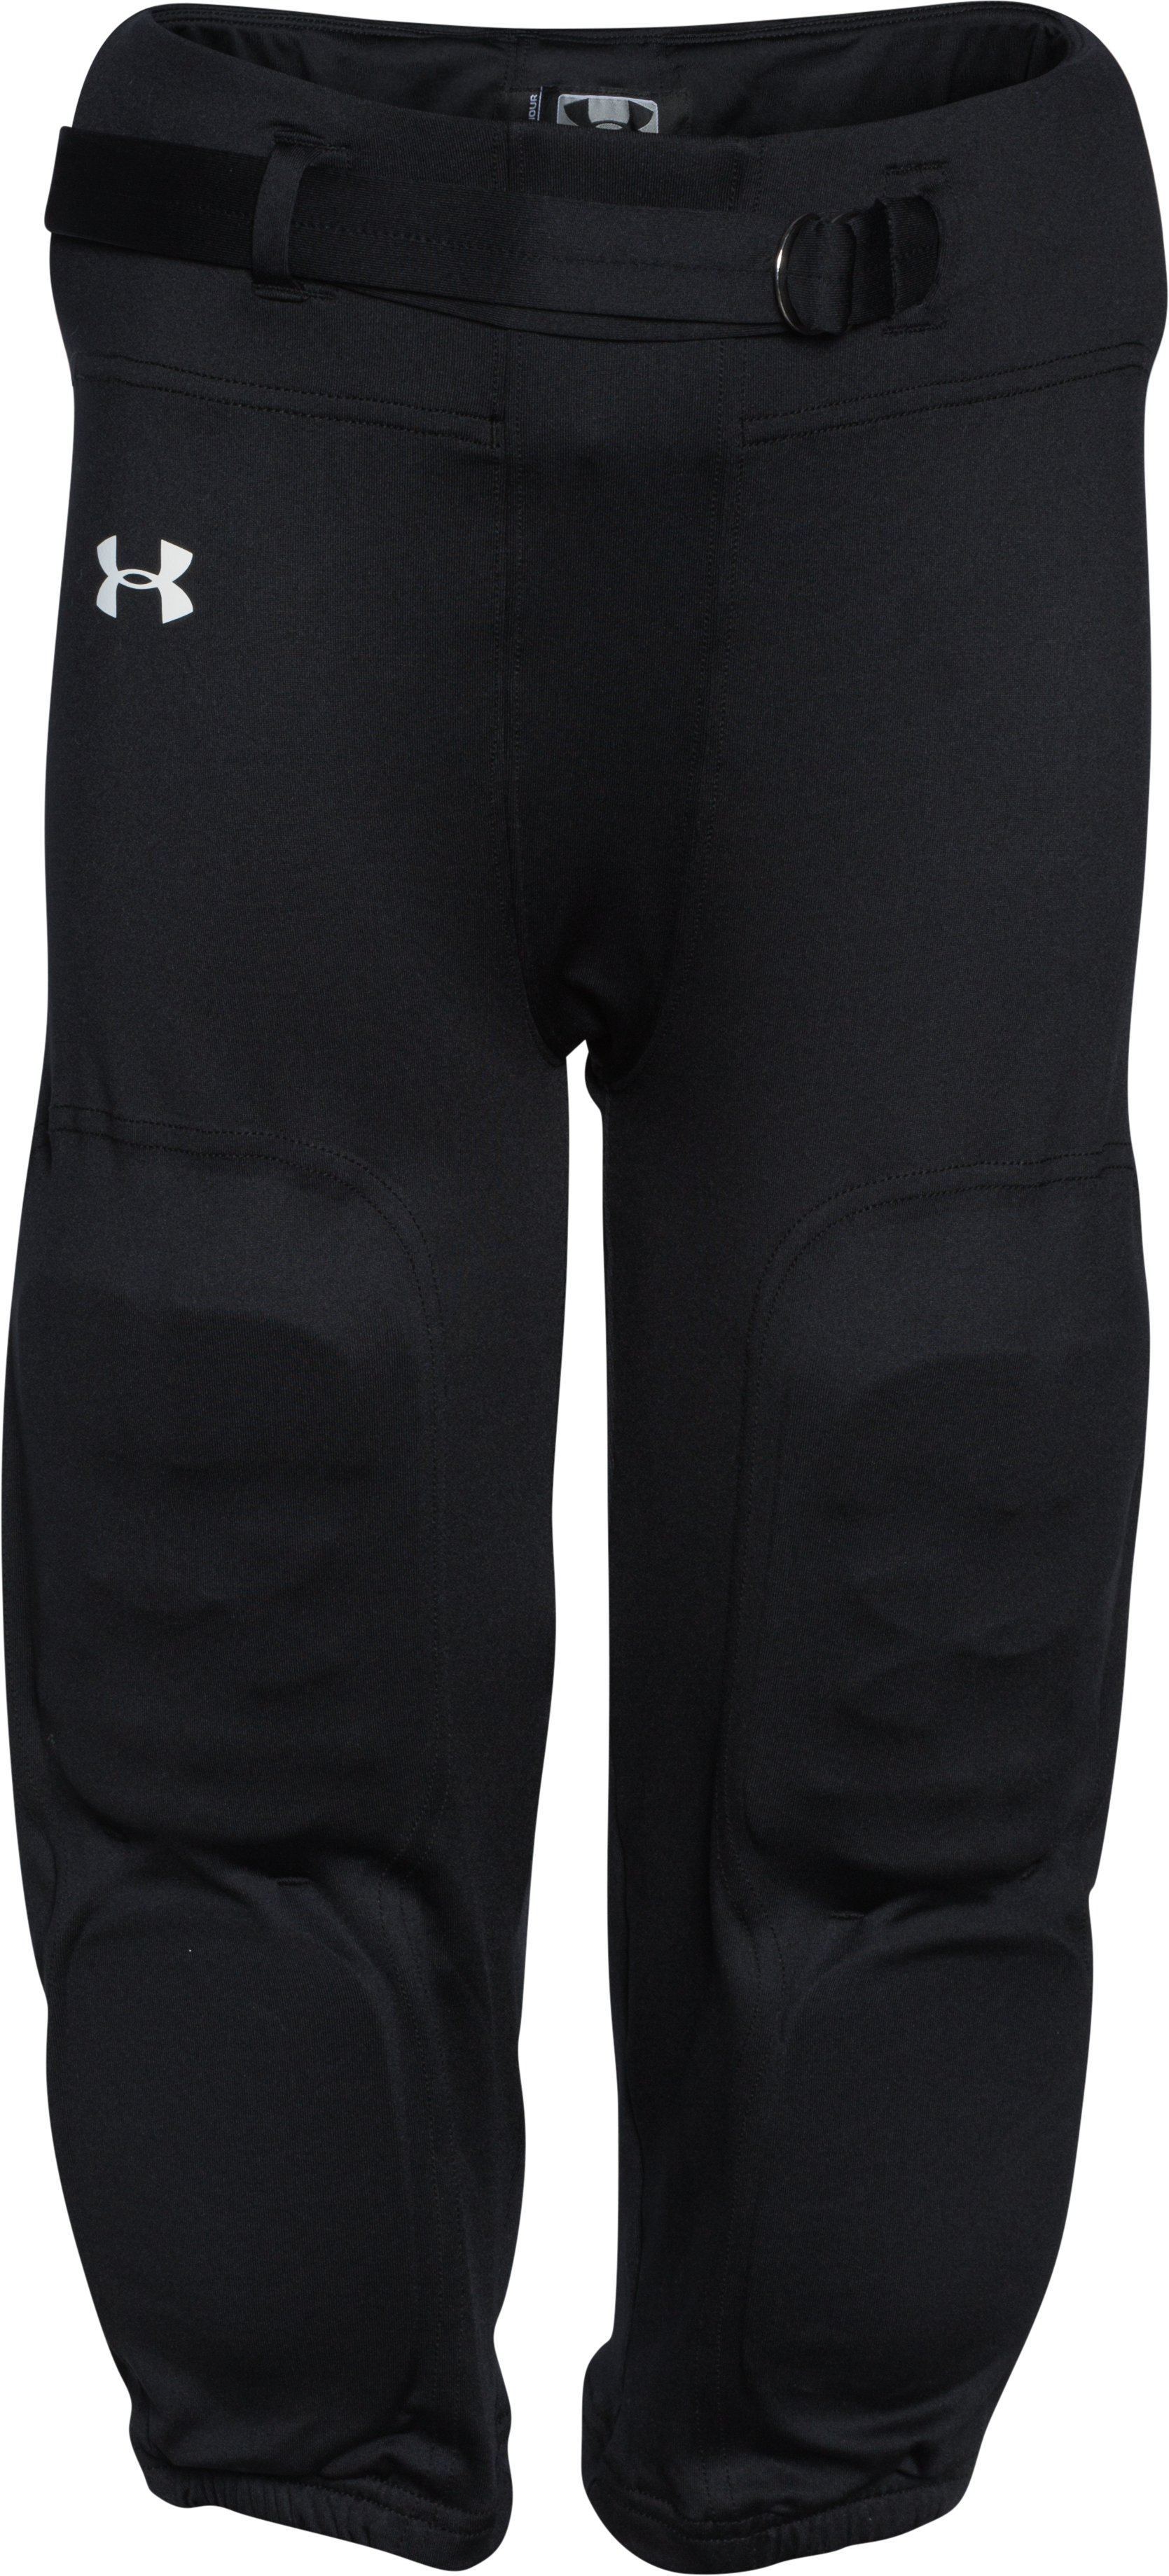 Boys' UA Integrated Football Pants, Black